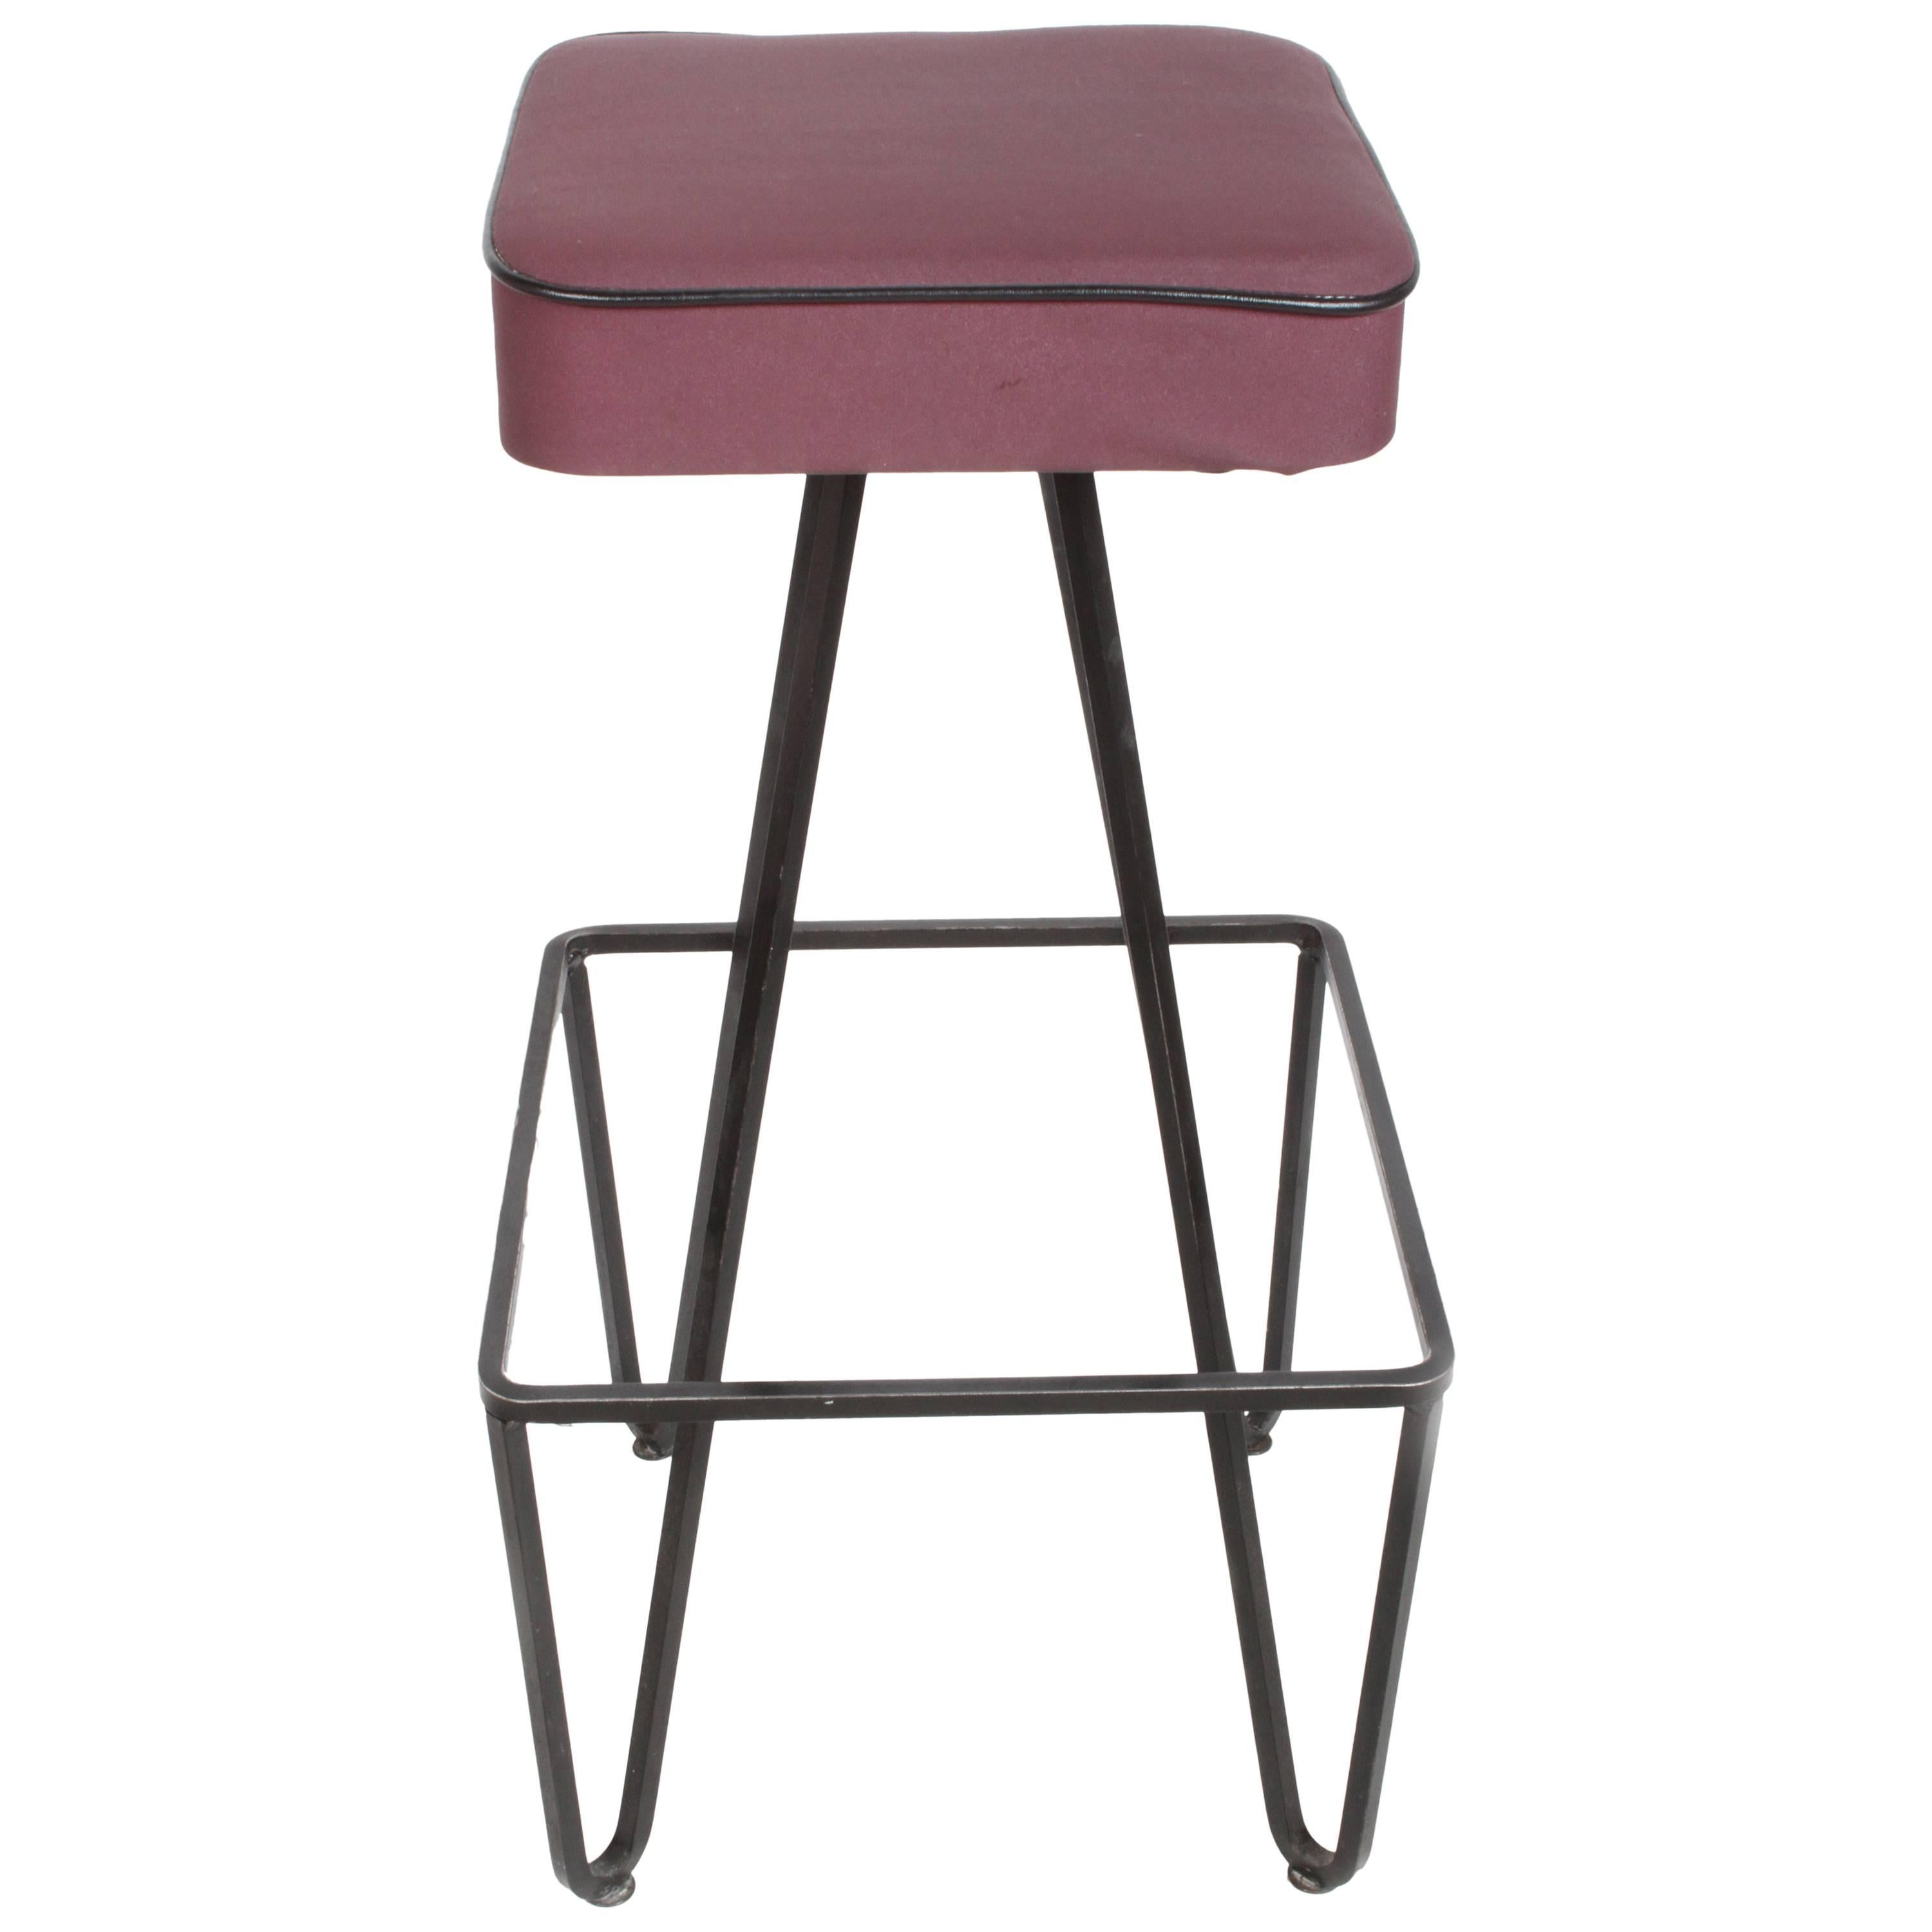 Pair of Mid-Century Modern Wrought Iron Bar Stools after Frederick Weinberg